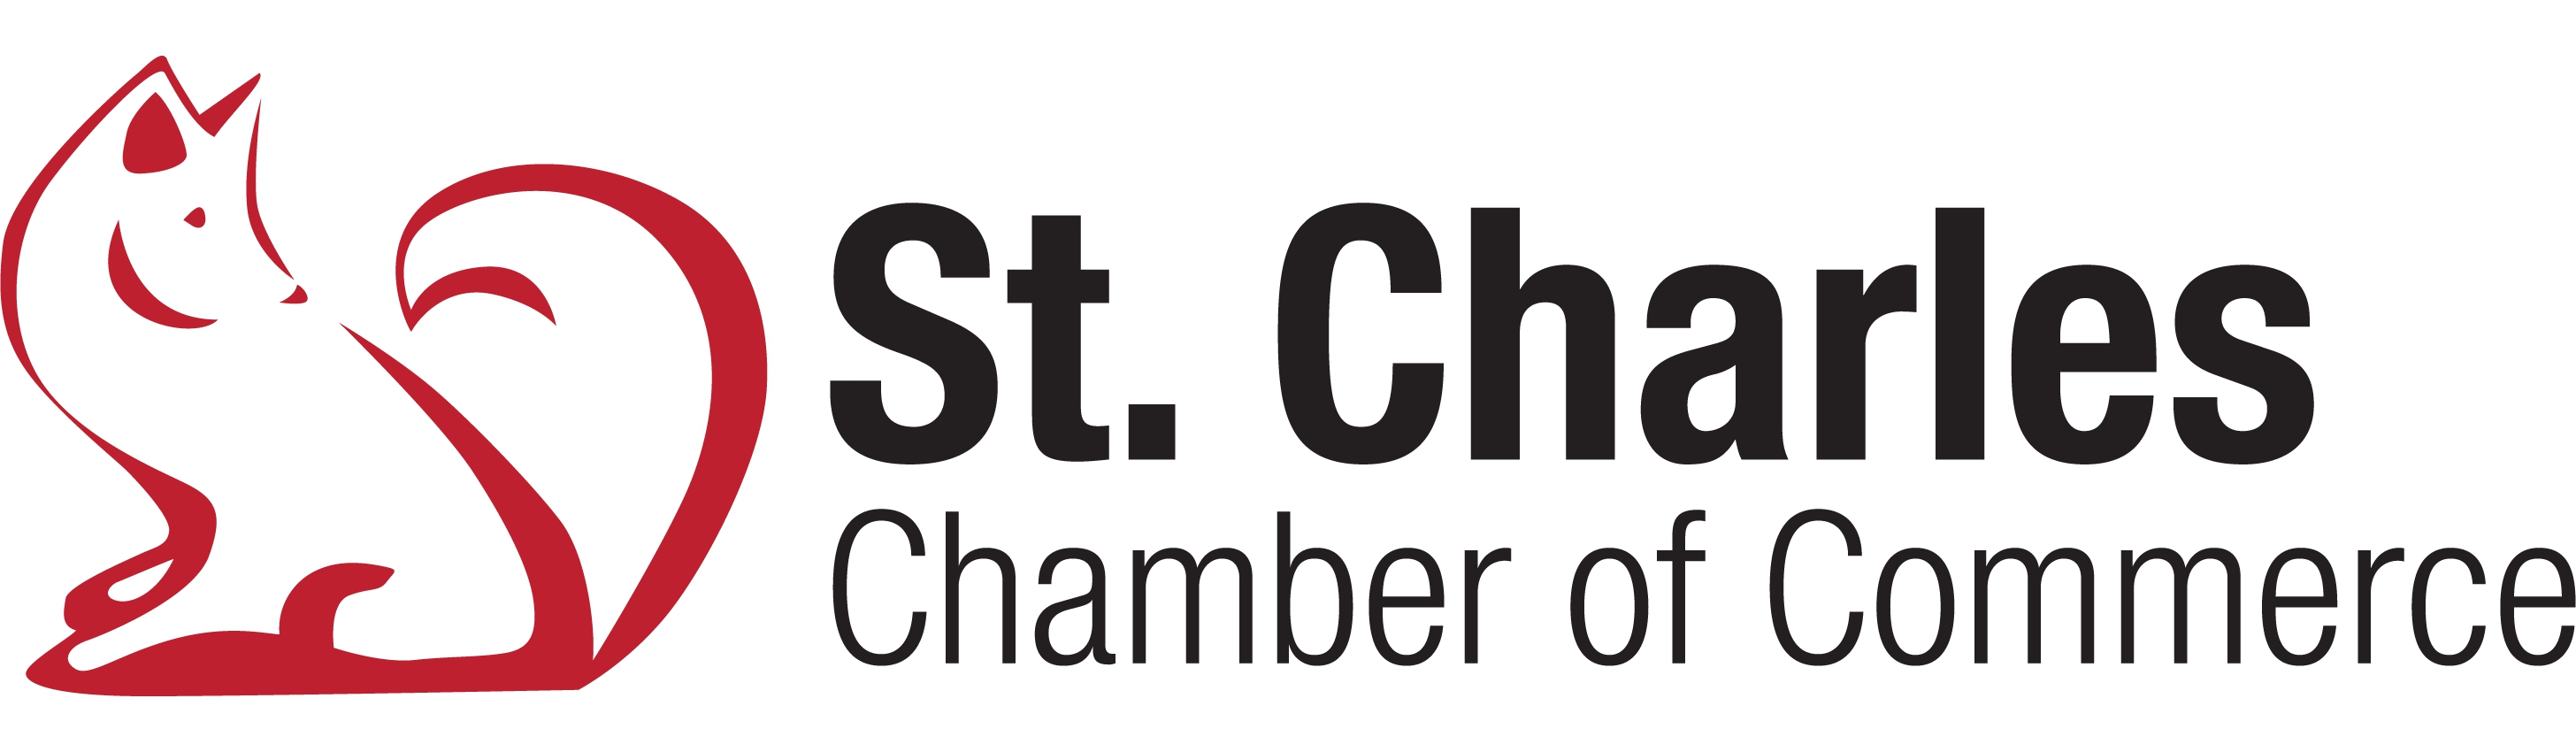 St Charles Chamber of Commerce_Logo high res.png